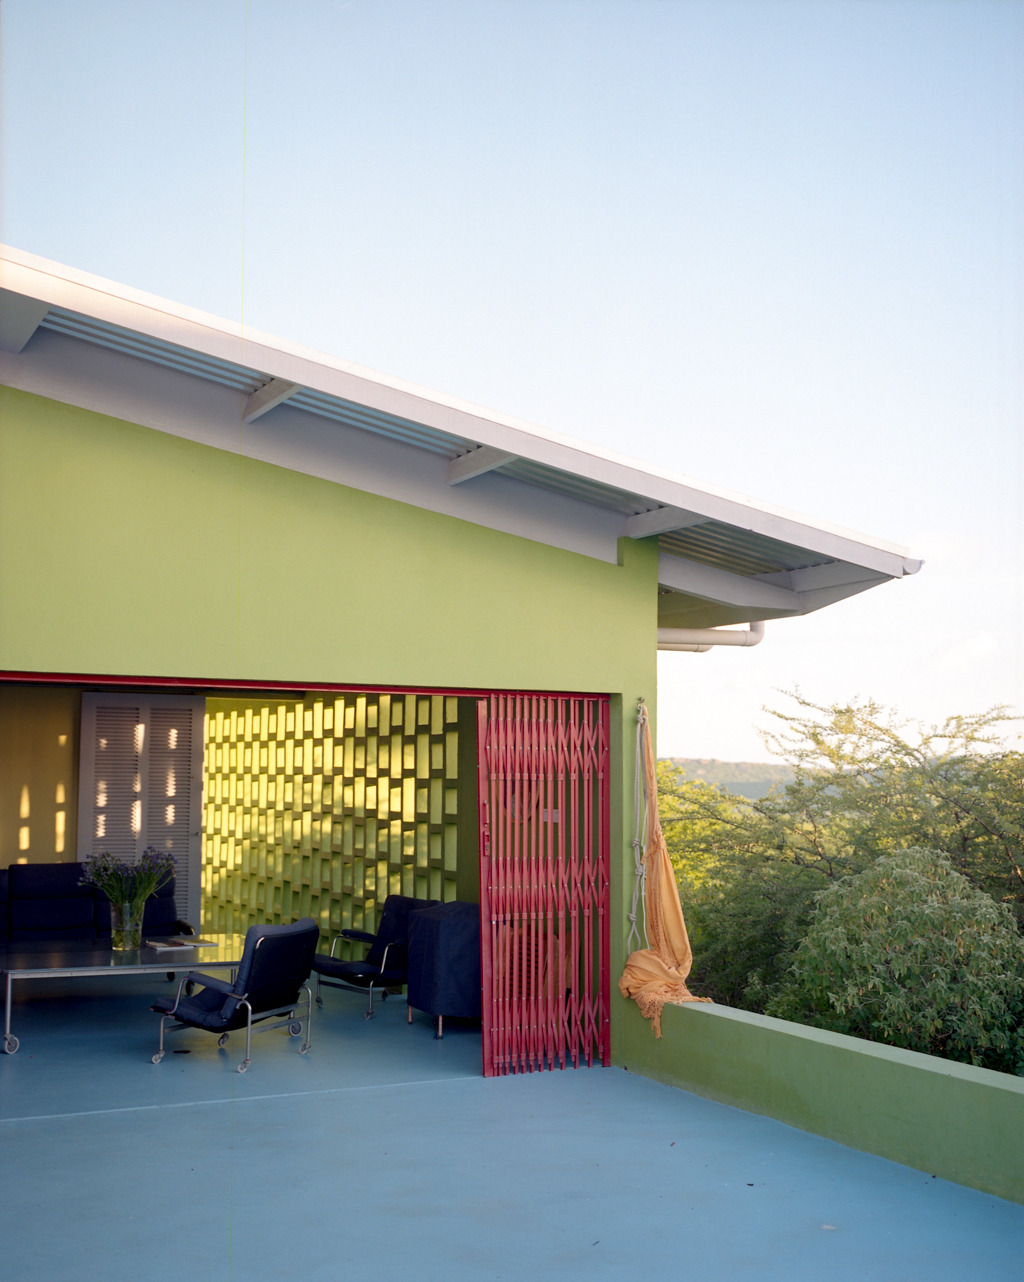 Architects Sofia Saavedra Bruno and Carel Weeber's house in Curaçao. Photographed as part of an assignment for enRoute magazine.